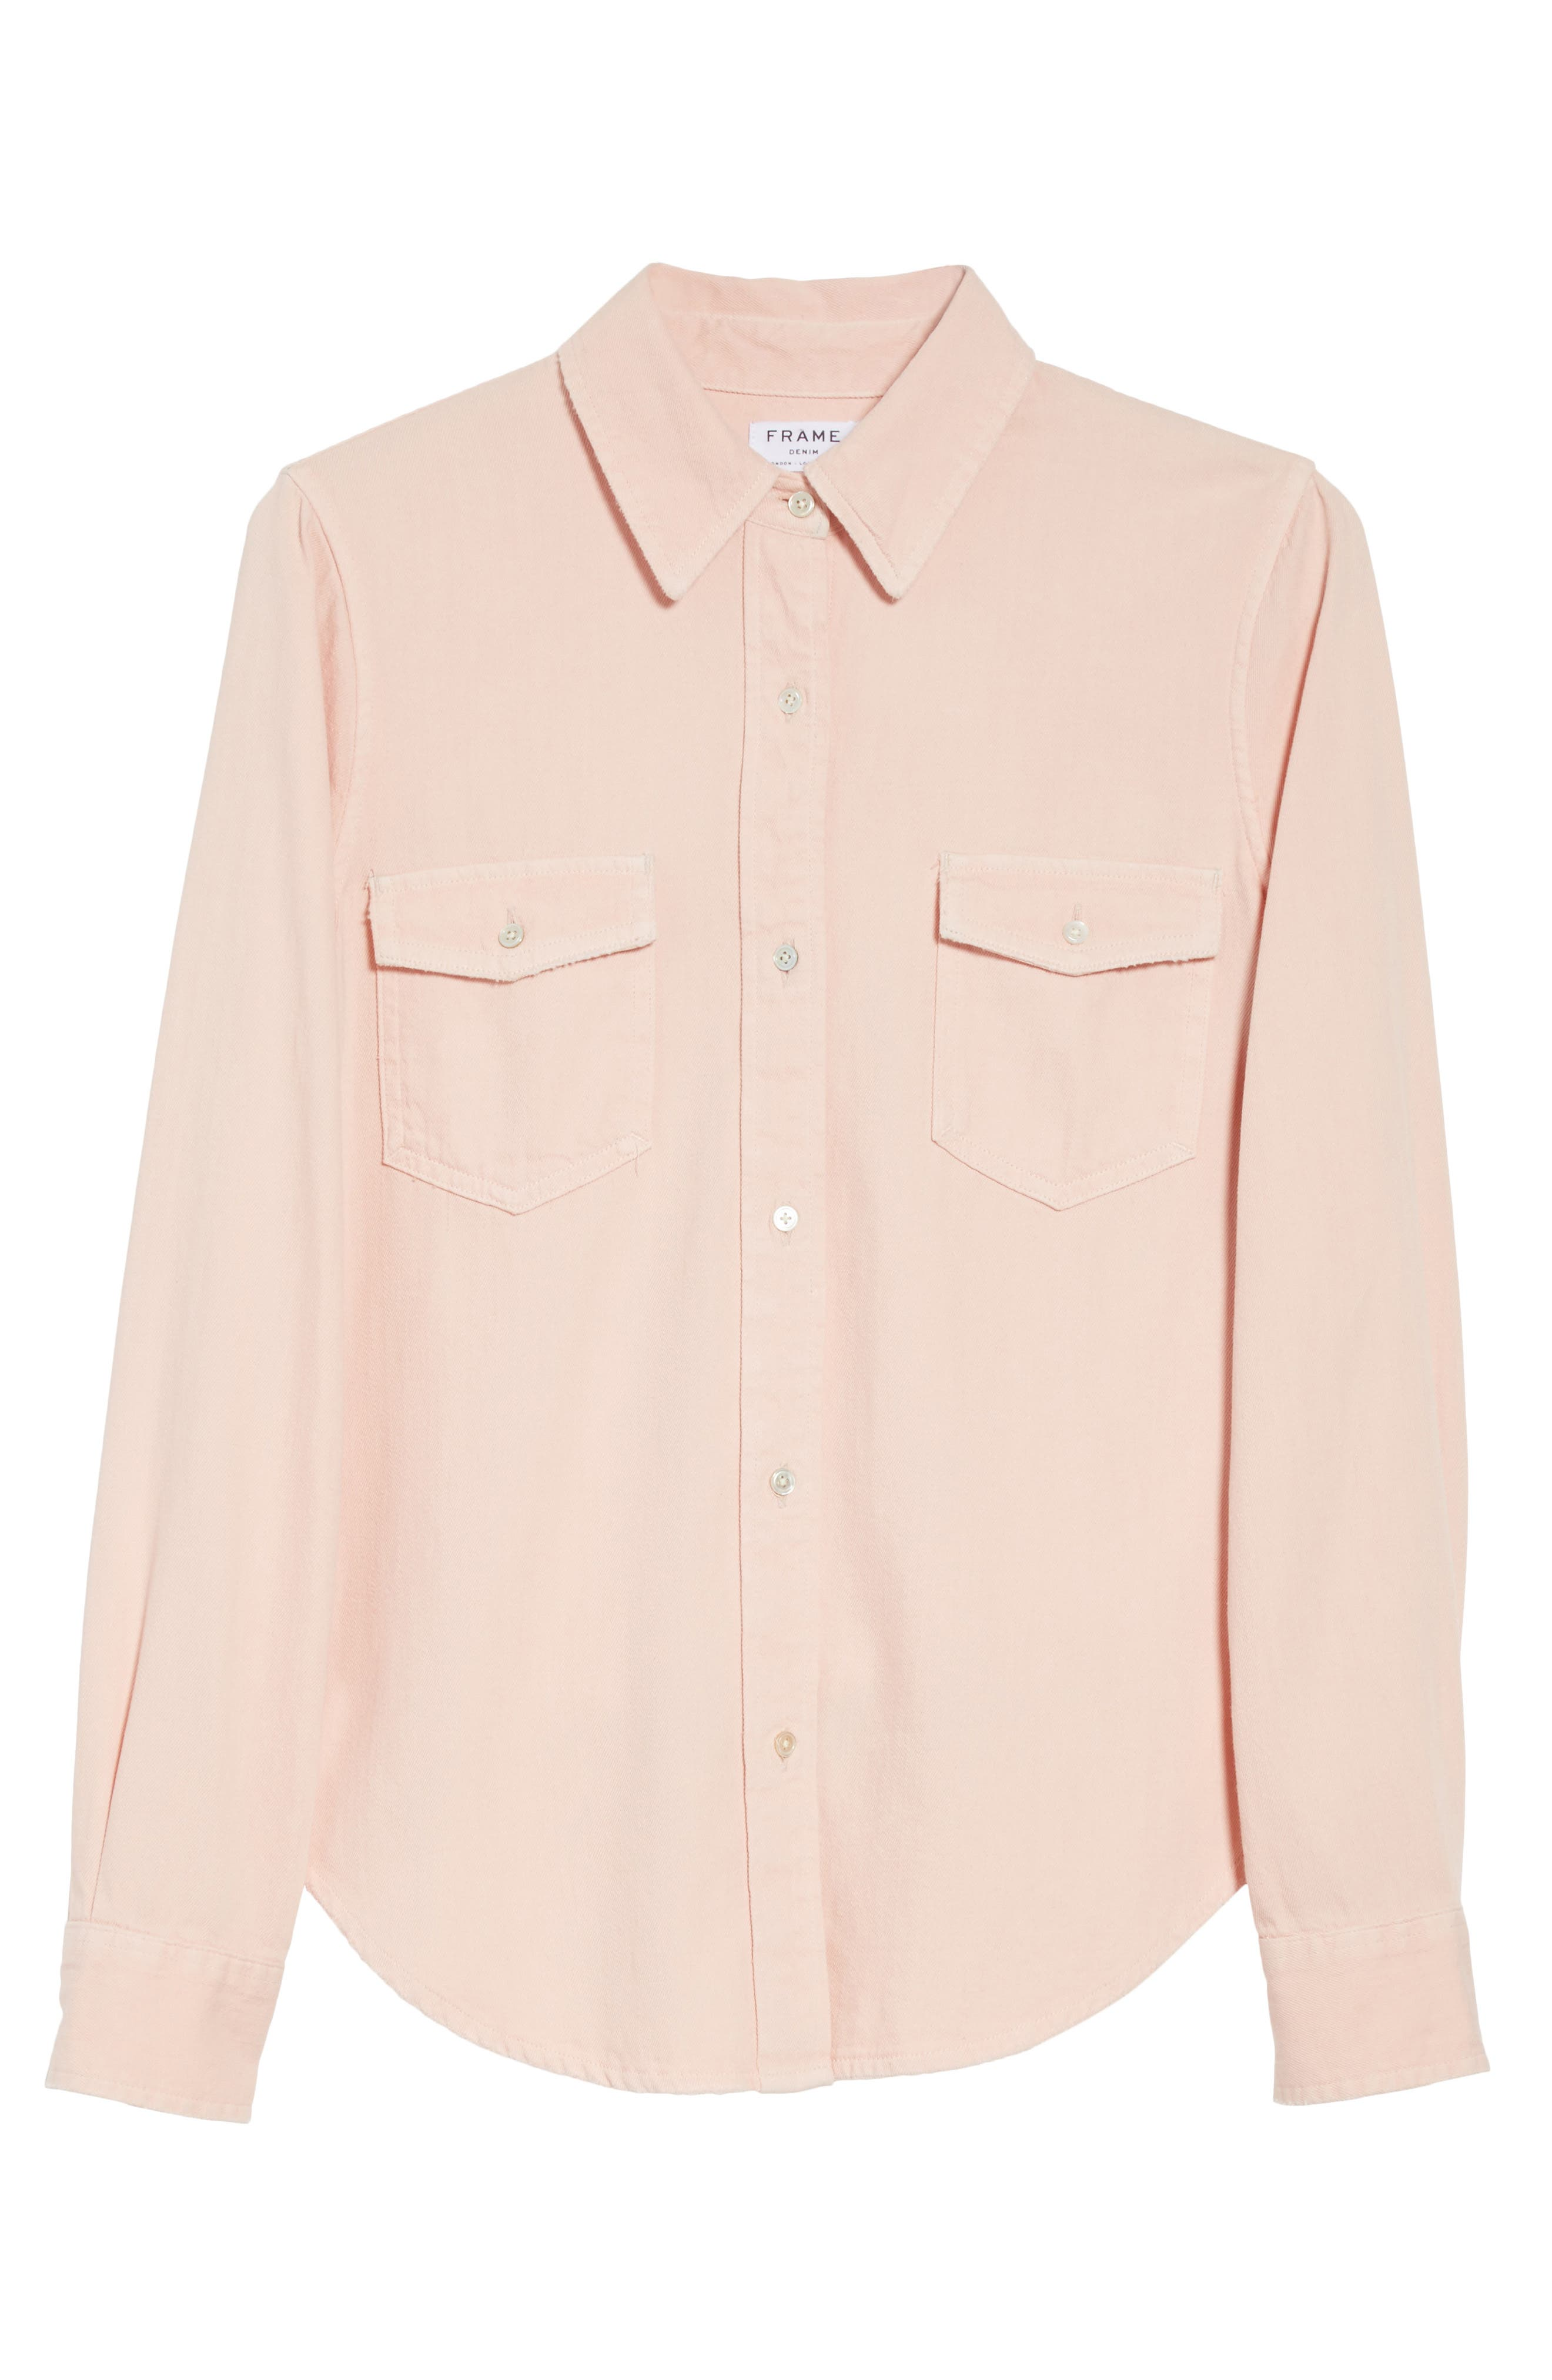 Denim Military Shirt,                             Alternate thumbnail 7, color,                             Faded Light Pink Exclusive